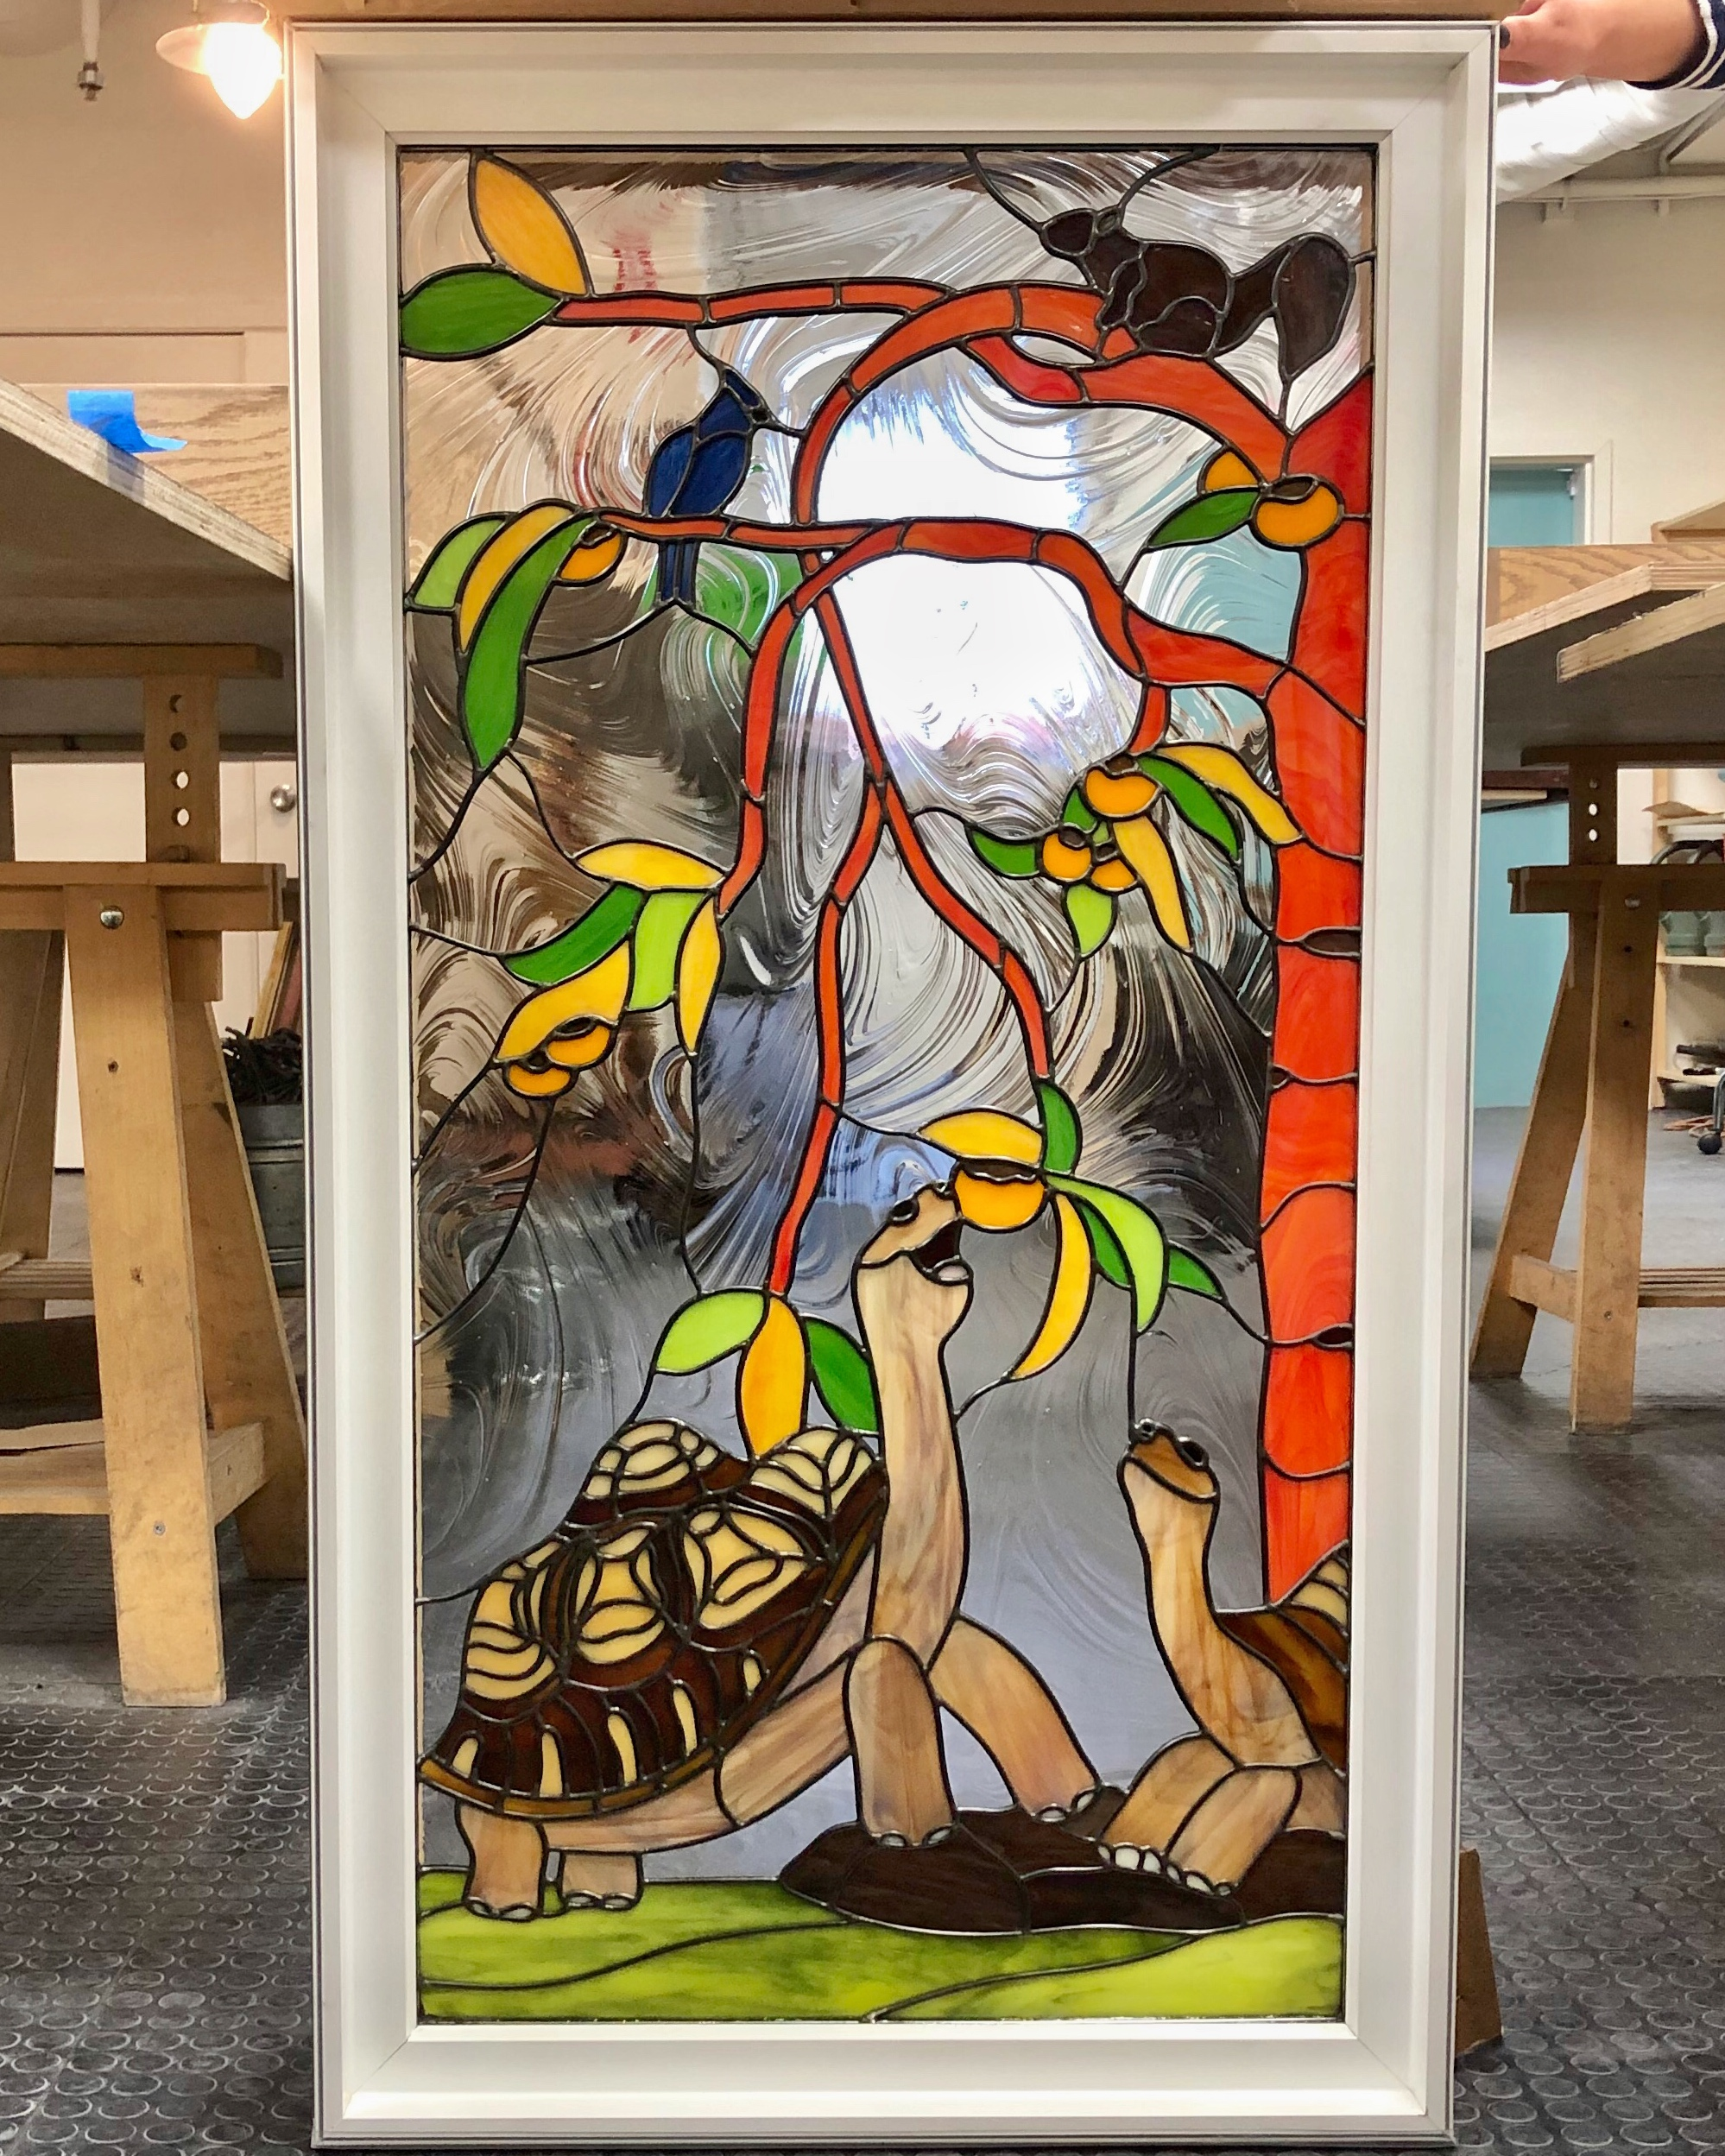 leaded glass stained glass san francisco art glass bay area custom design stained glass legacy glass studios design tortoise turtle tree birds persimmon leaves squirrel baroque green yellow orange pets realistic animals rock grass scene .jpg